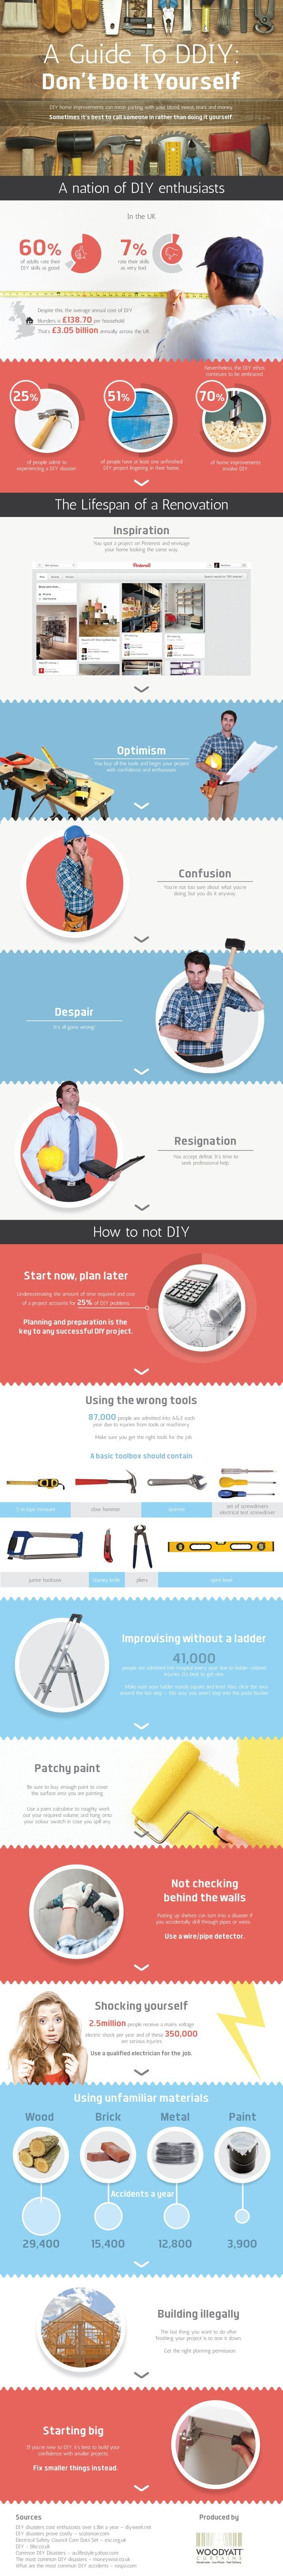 This Graphic Warns Of Common Pitfalls that Can Wreck Your DIY Project